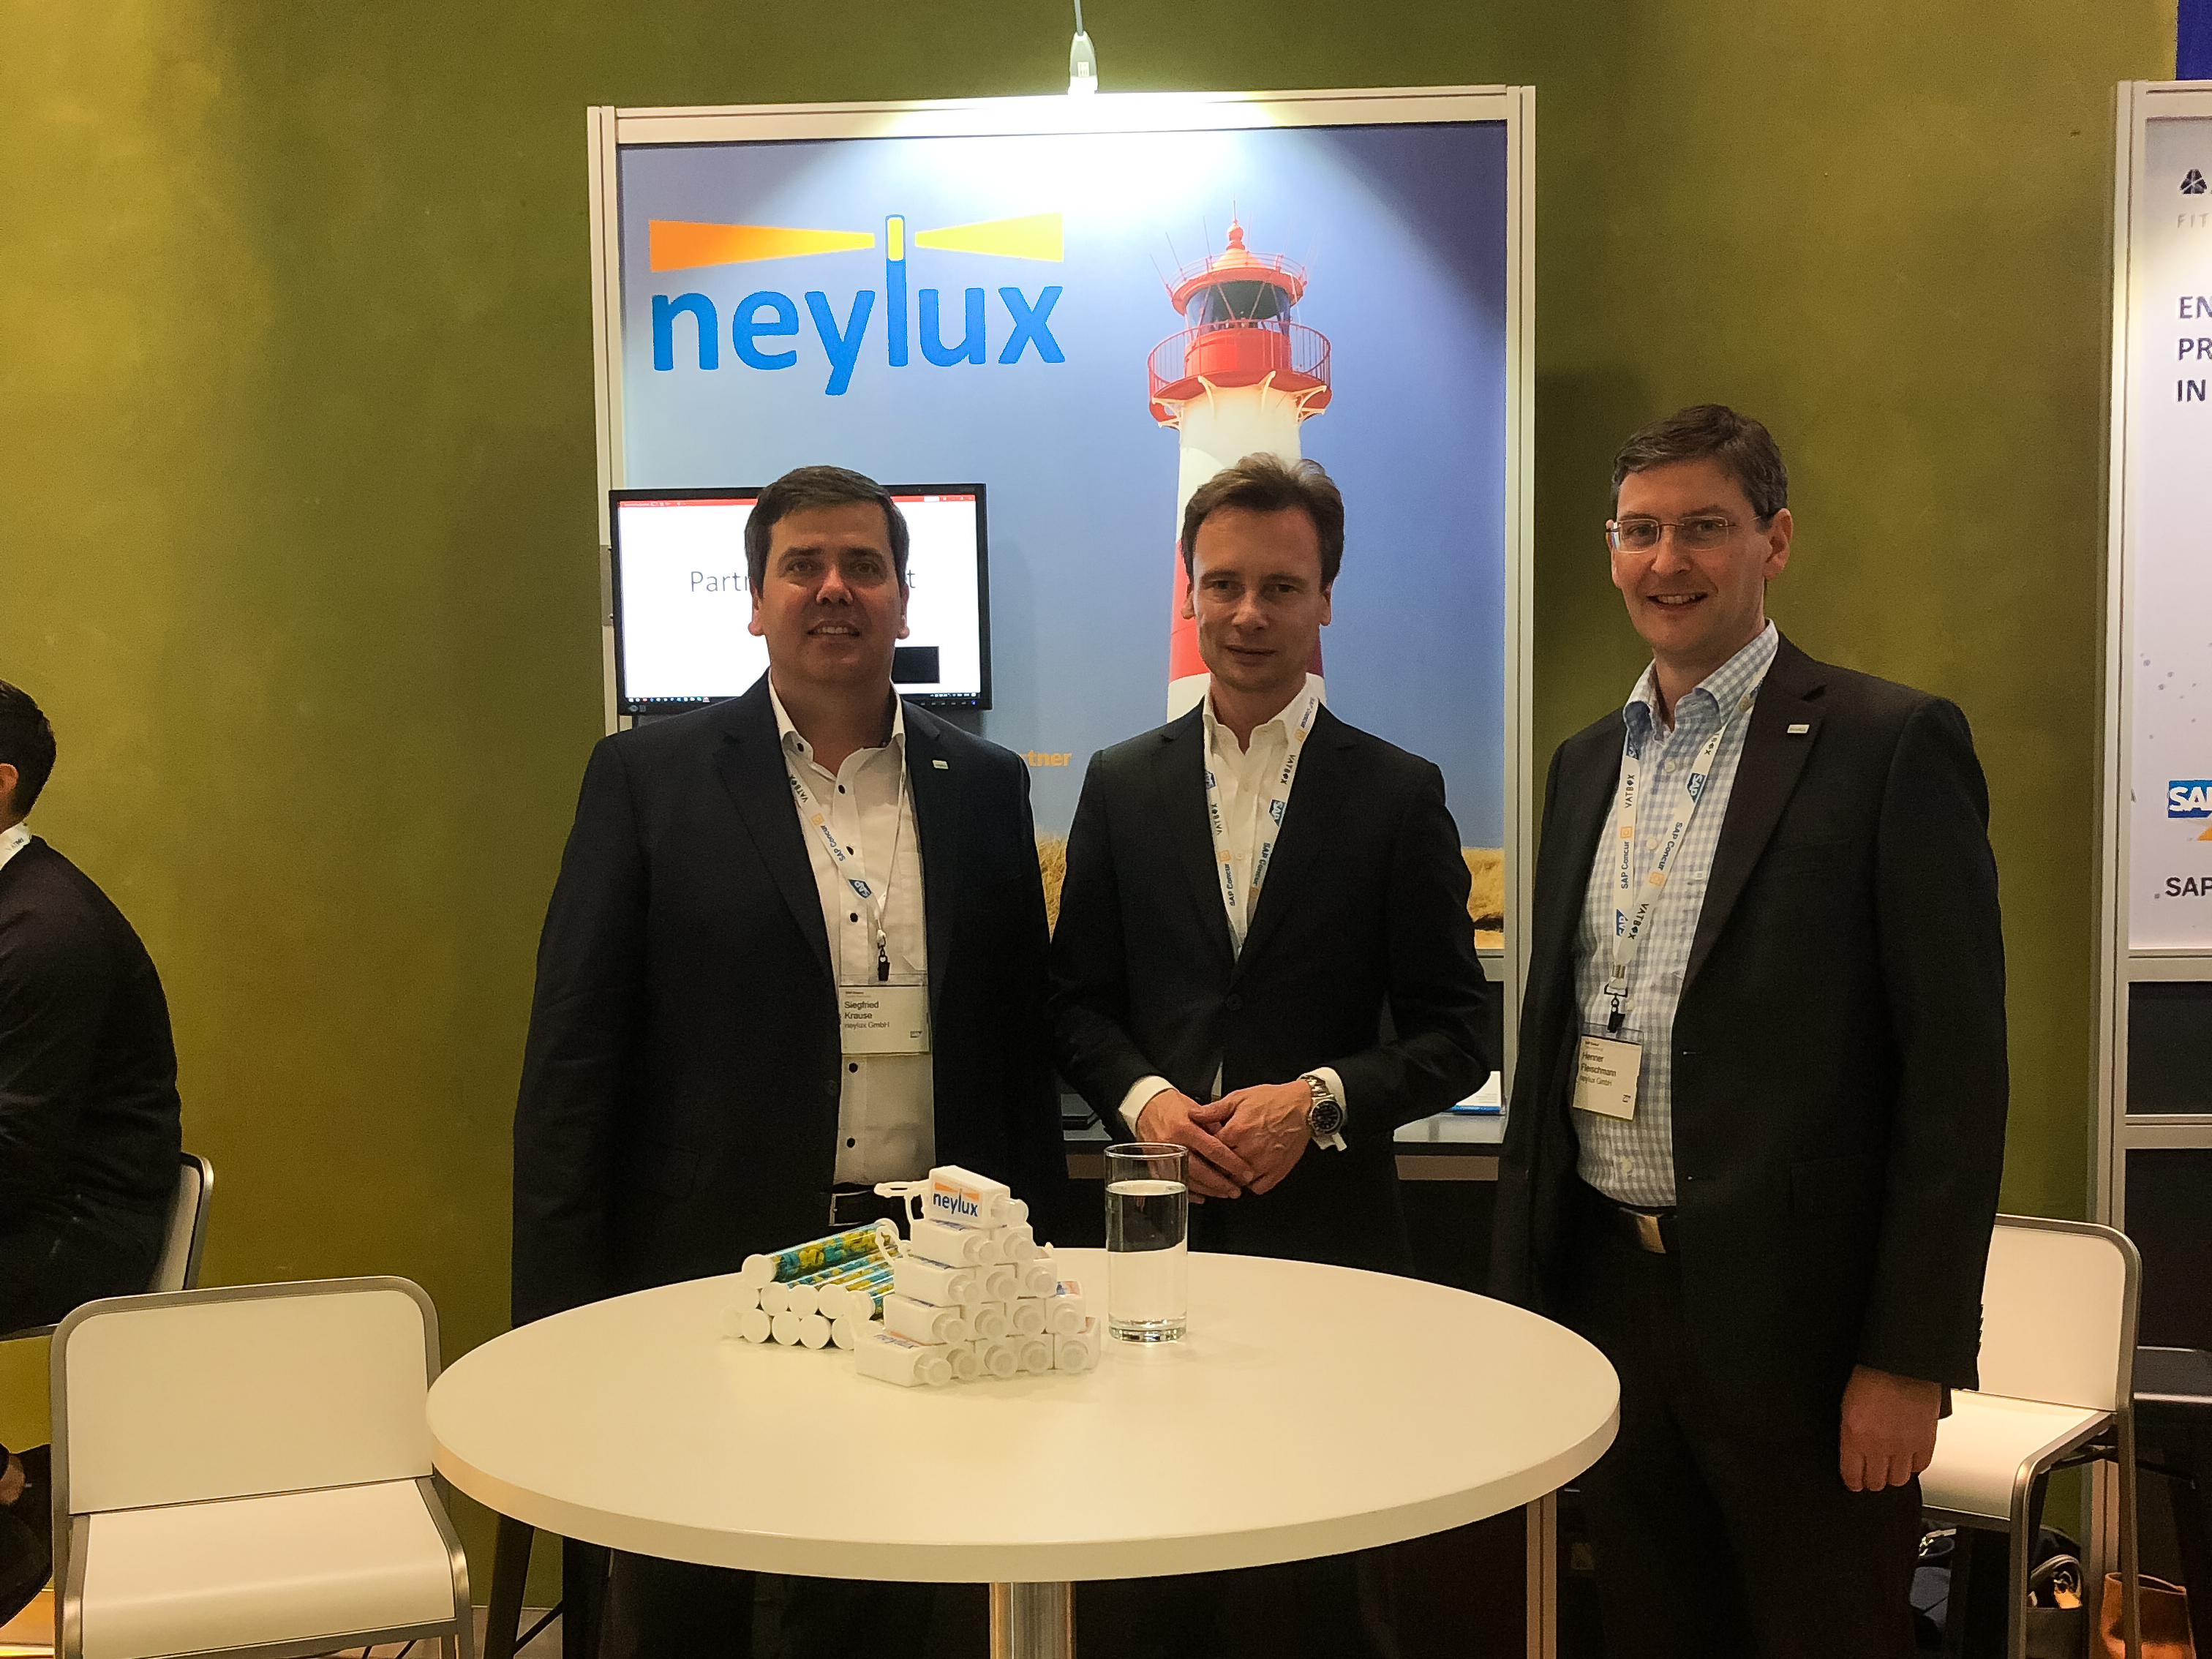 neylux partners with PSP